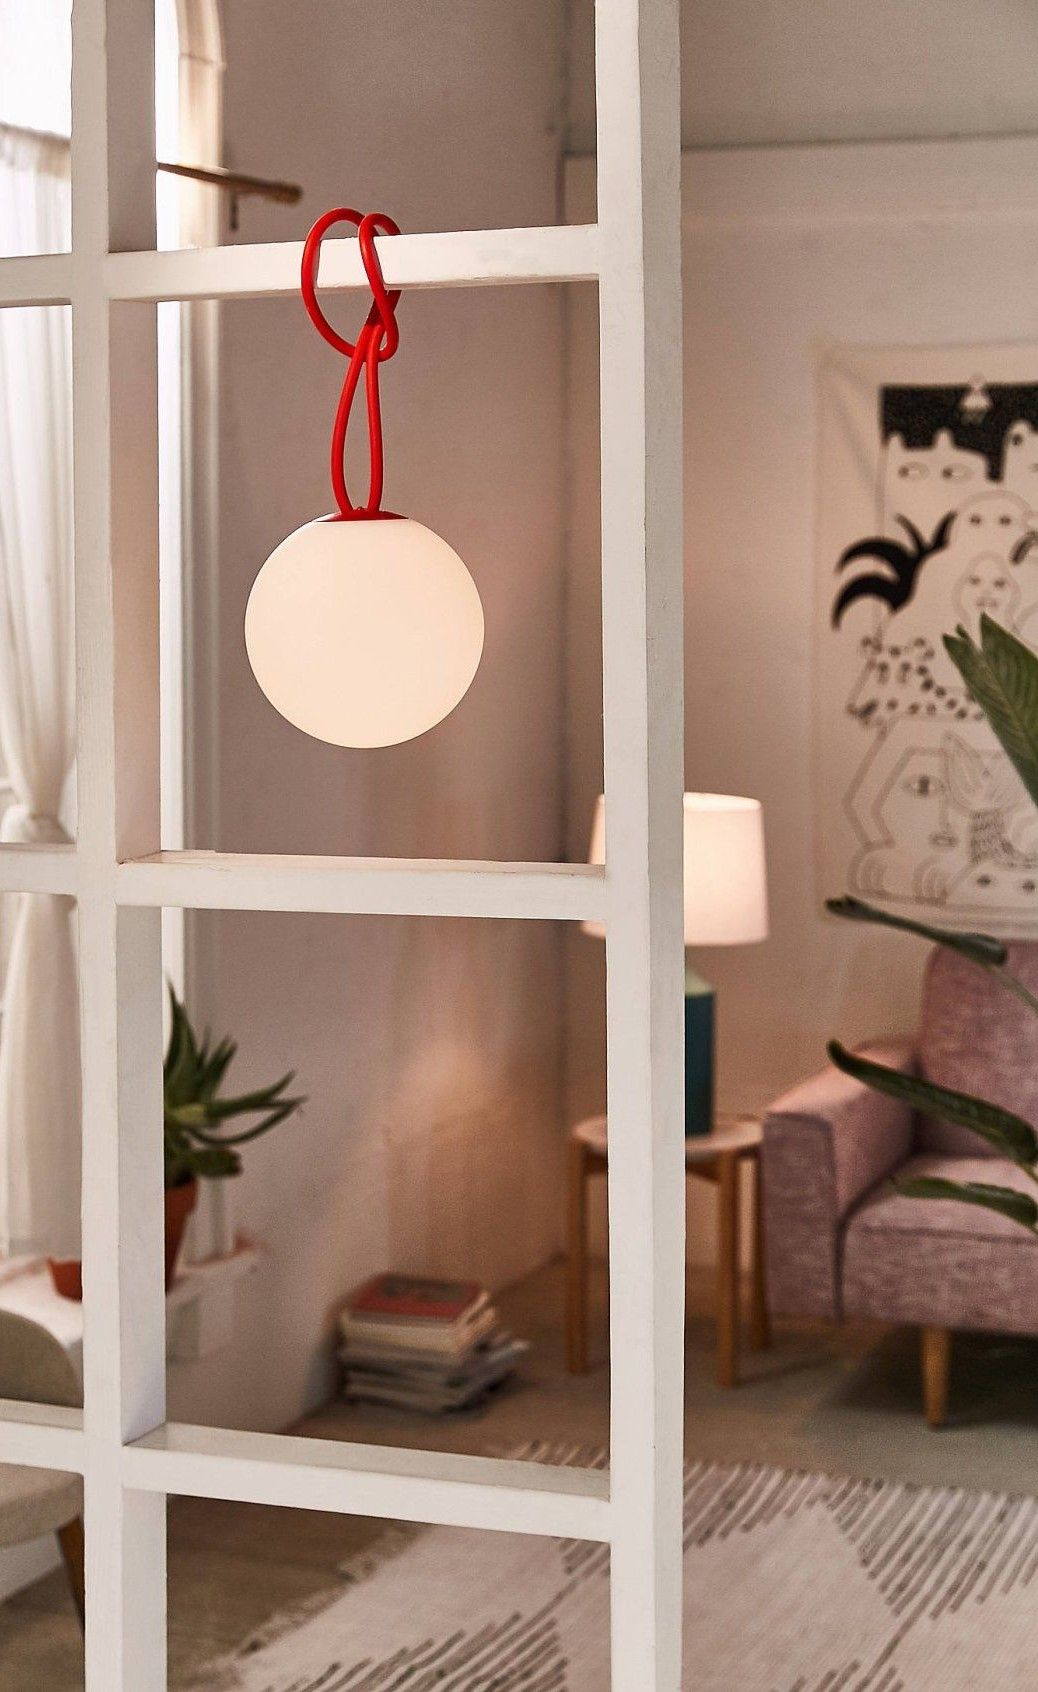 The Bolleke Outdoor Portable Light Is A Convenient Portable Lamp Perfect To Use Outside Or Inside In A Livi In 2020 With Images Hanging Lamp Kids Room Lighting Unique Wall Sconce